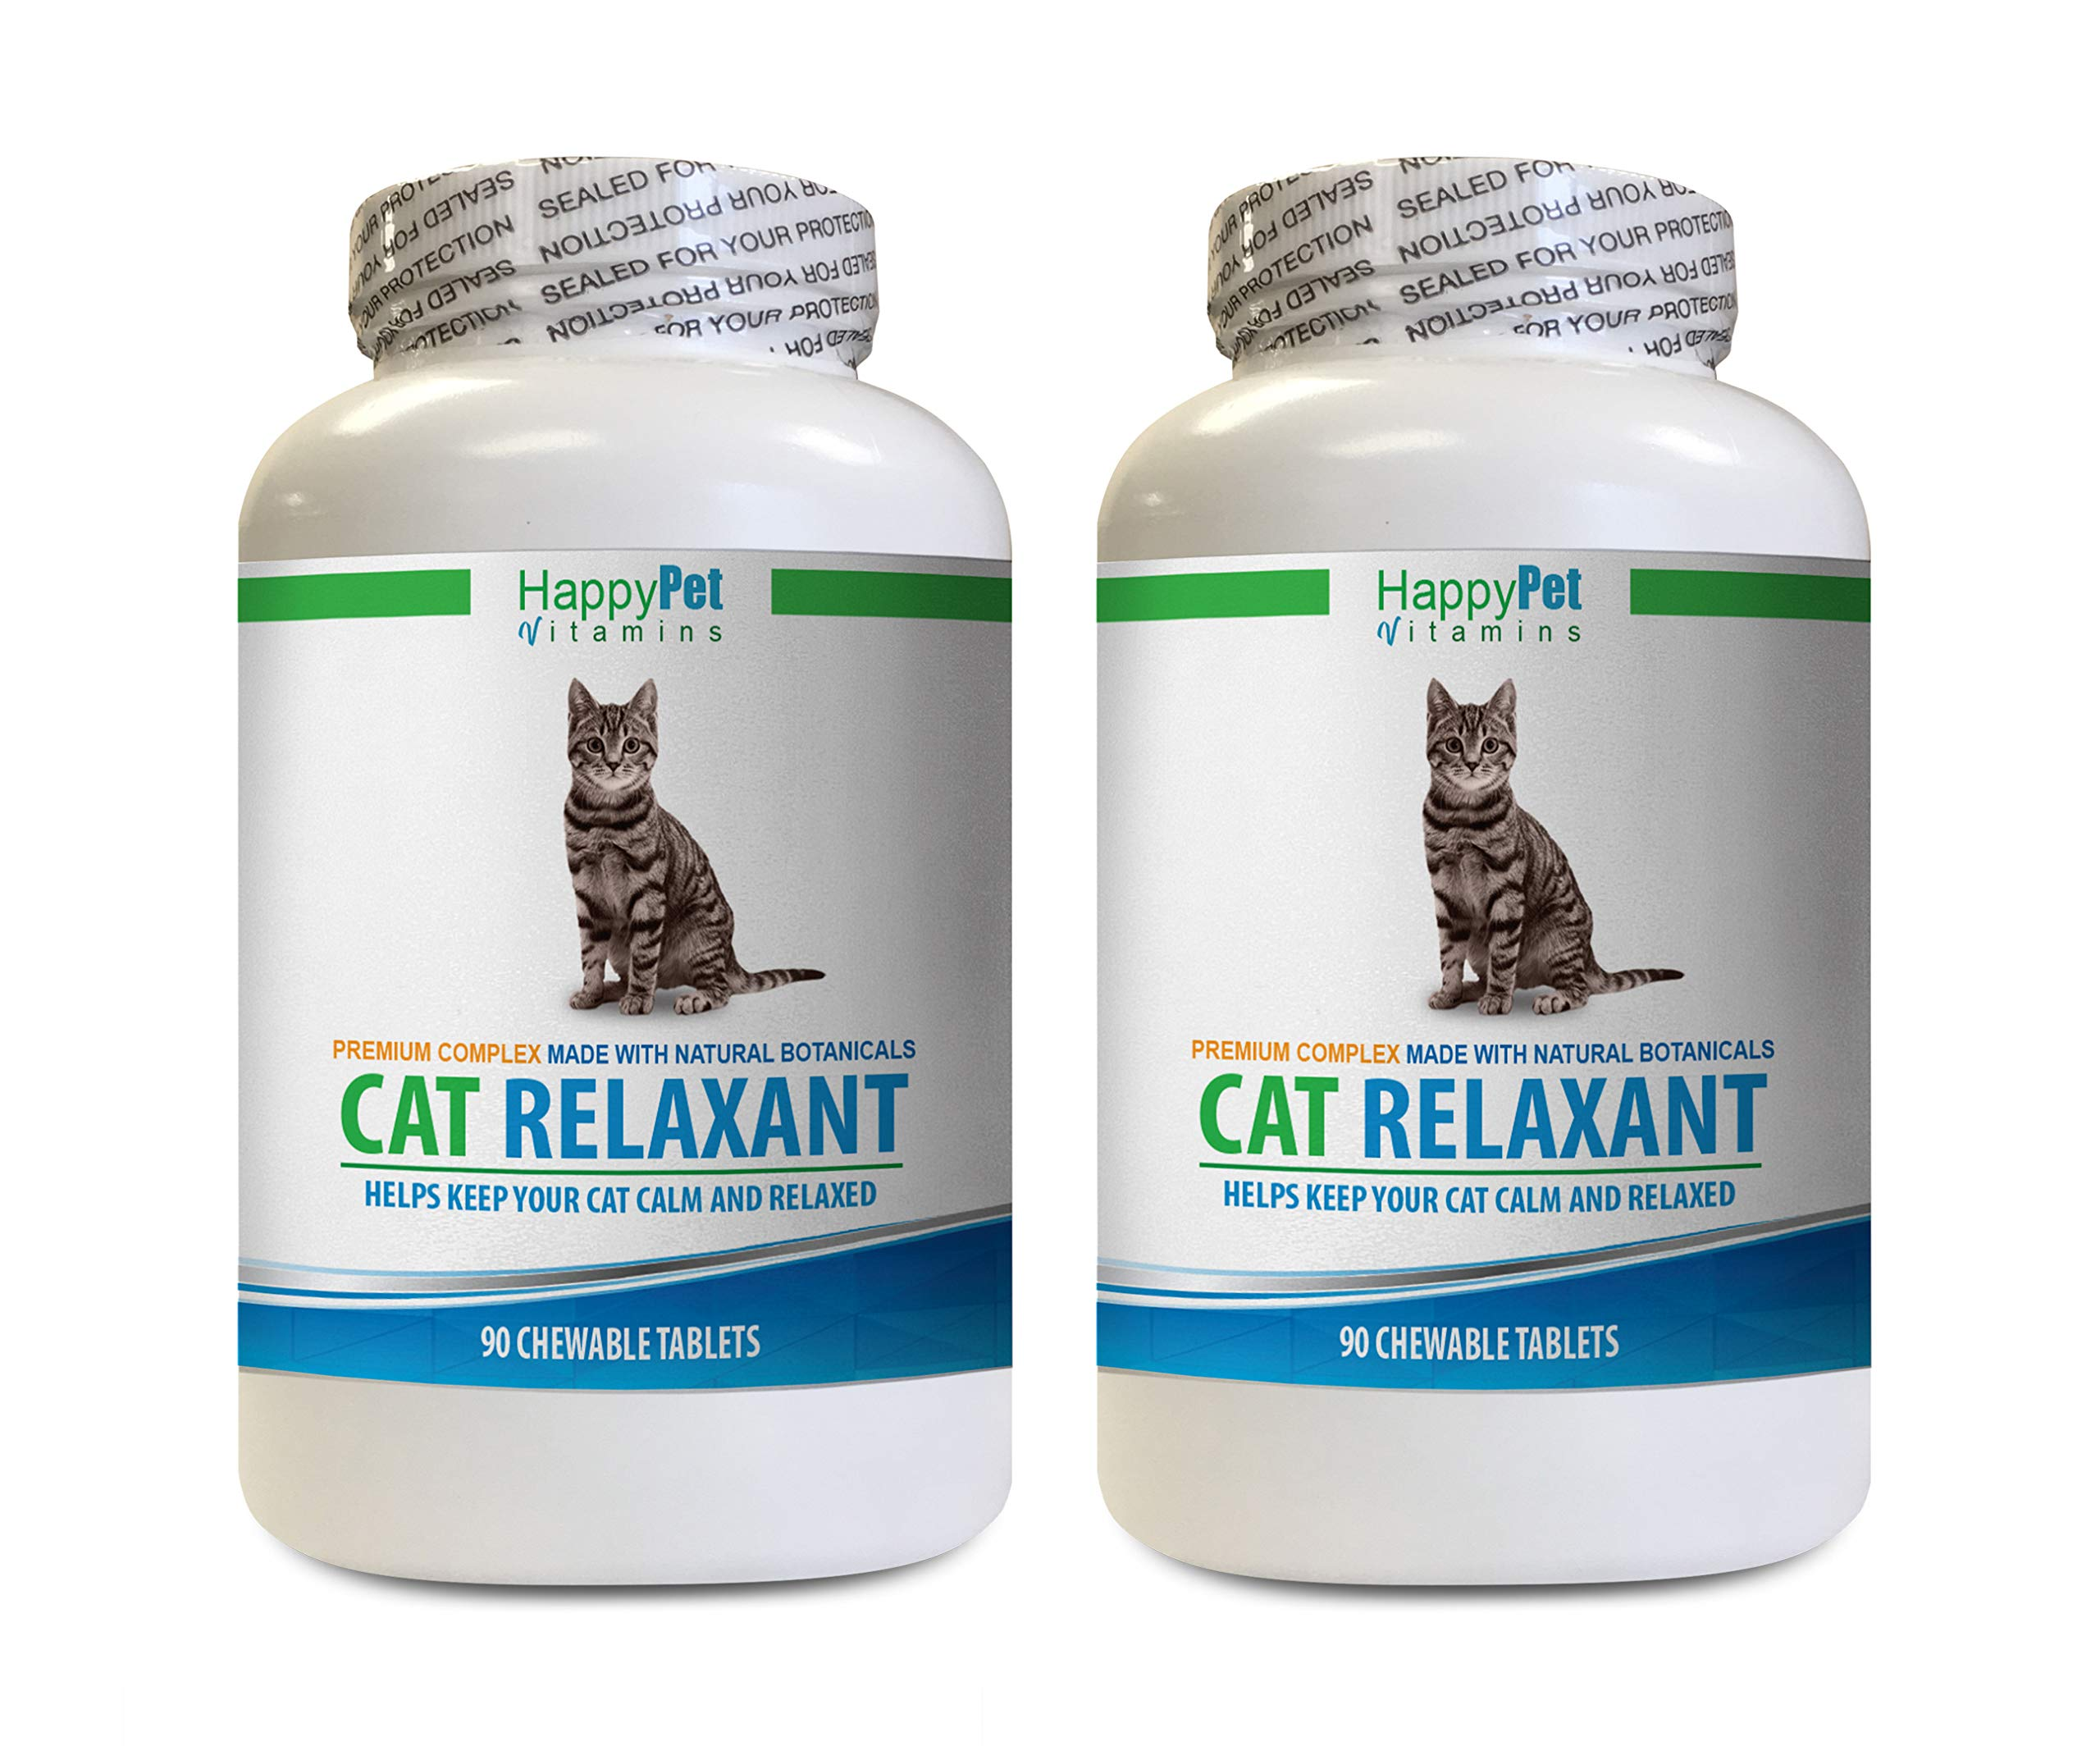 HAPPY PET VITAMINS LLC cat Calming - CAT Relaxant - Anxiety and Stress Relief - Natural Calmer - Premium - Valerian Seeds for Cats - 2 Bottles (180 Chewable Tabs) by HAPPY PET VITAMINS LLC